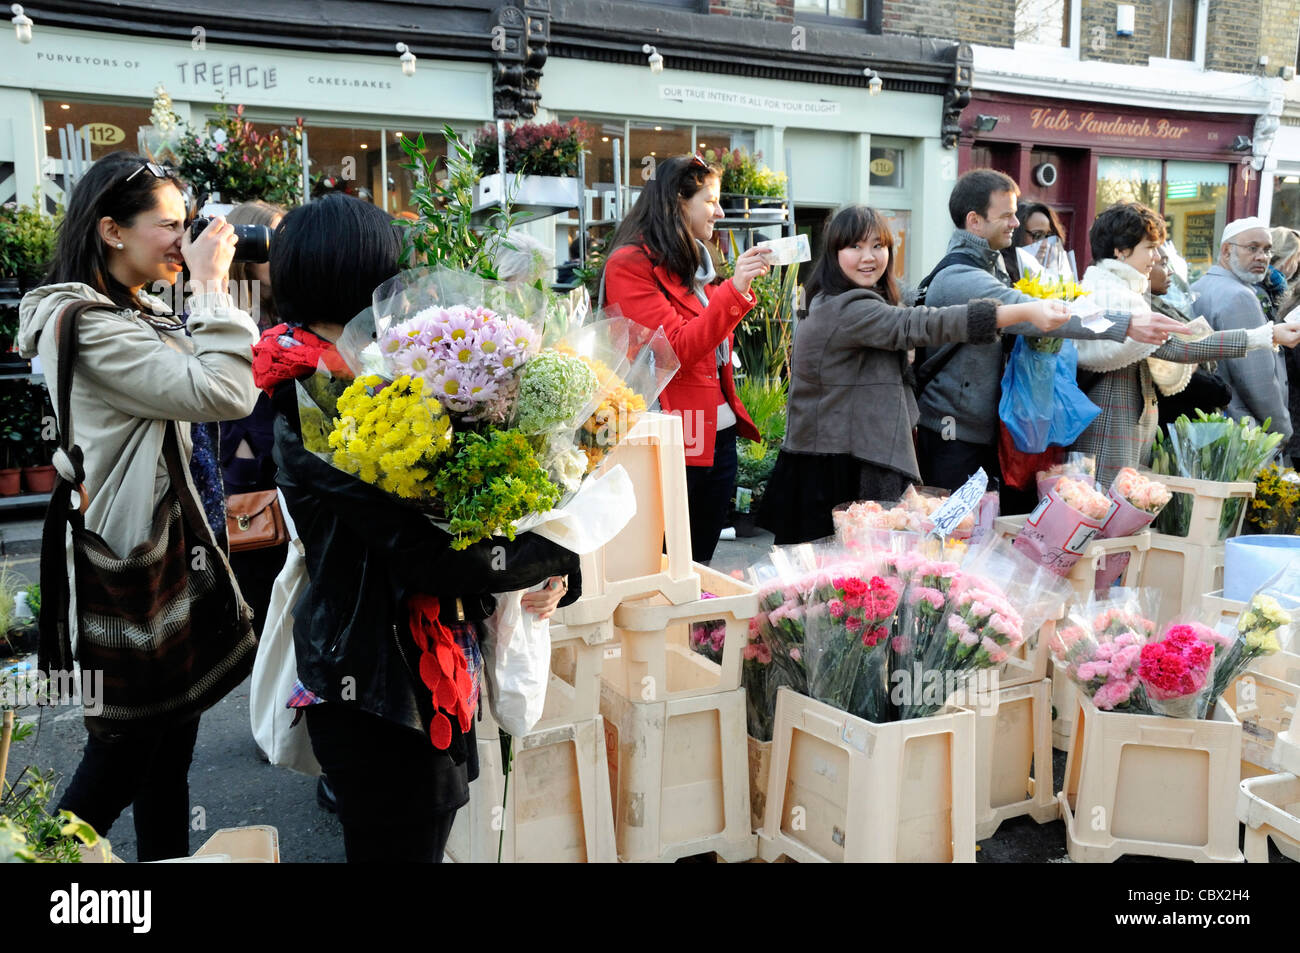 Lady holds several buches of flowers which are being sold off cheaply, Columbia Road Flower Market, Tower Hamlet, - Stock Image